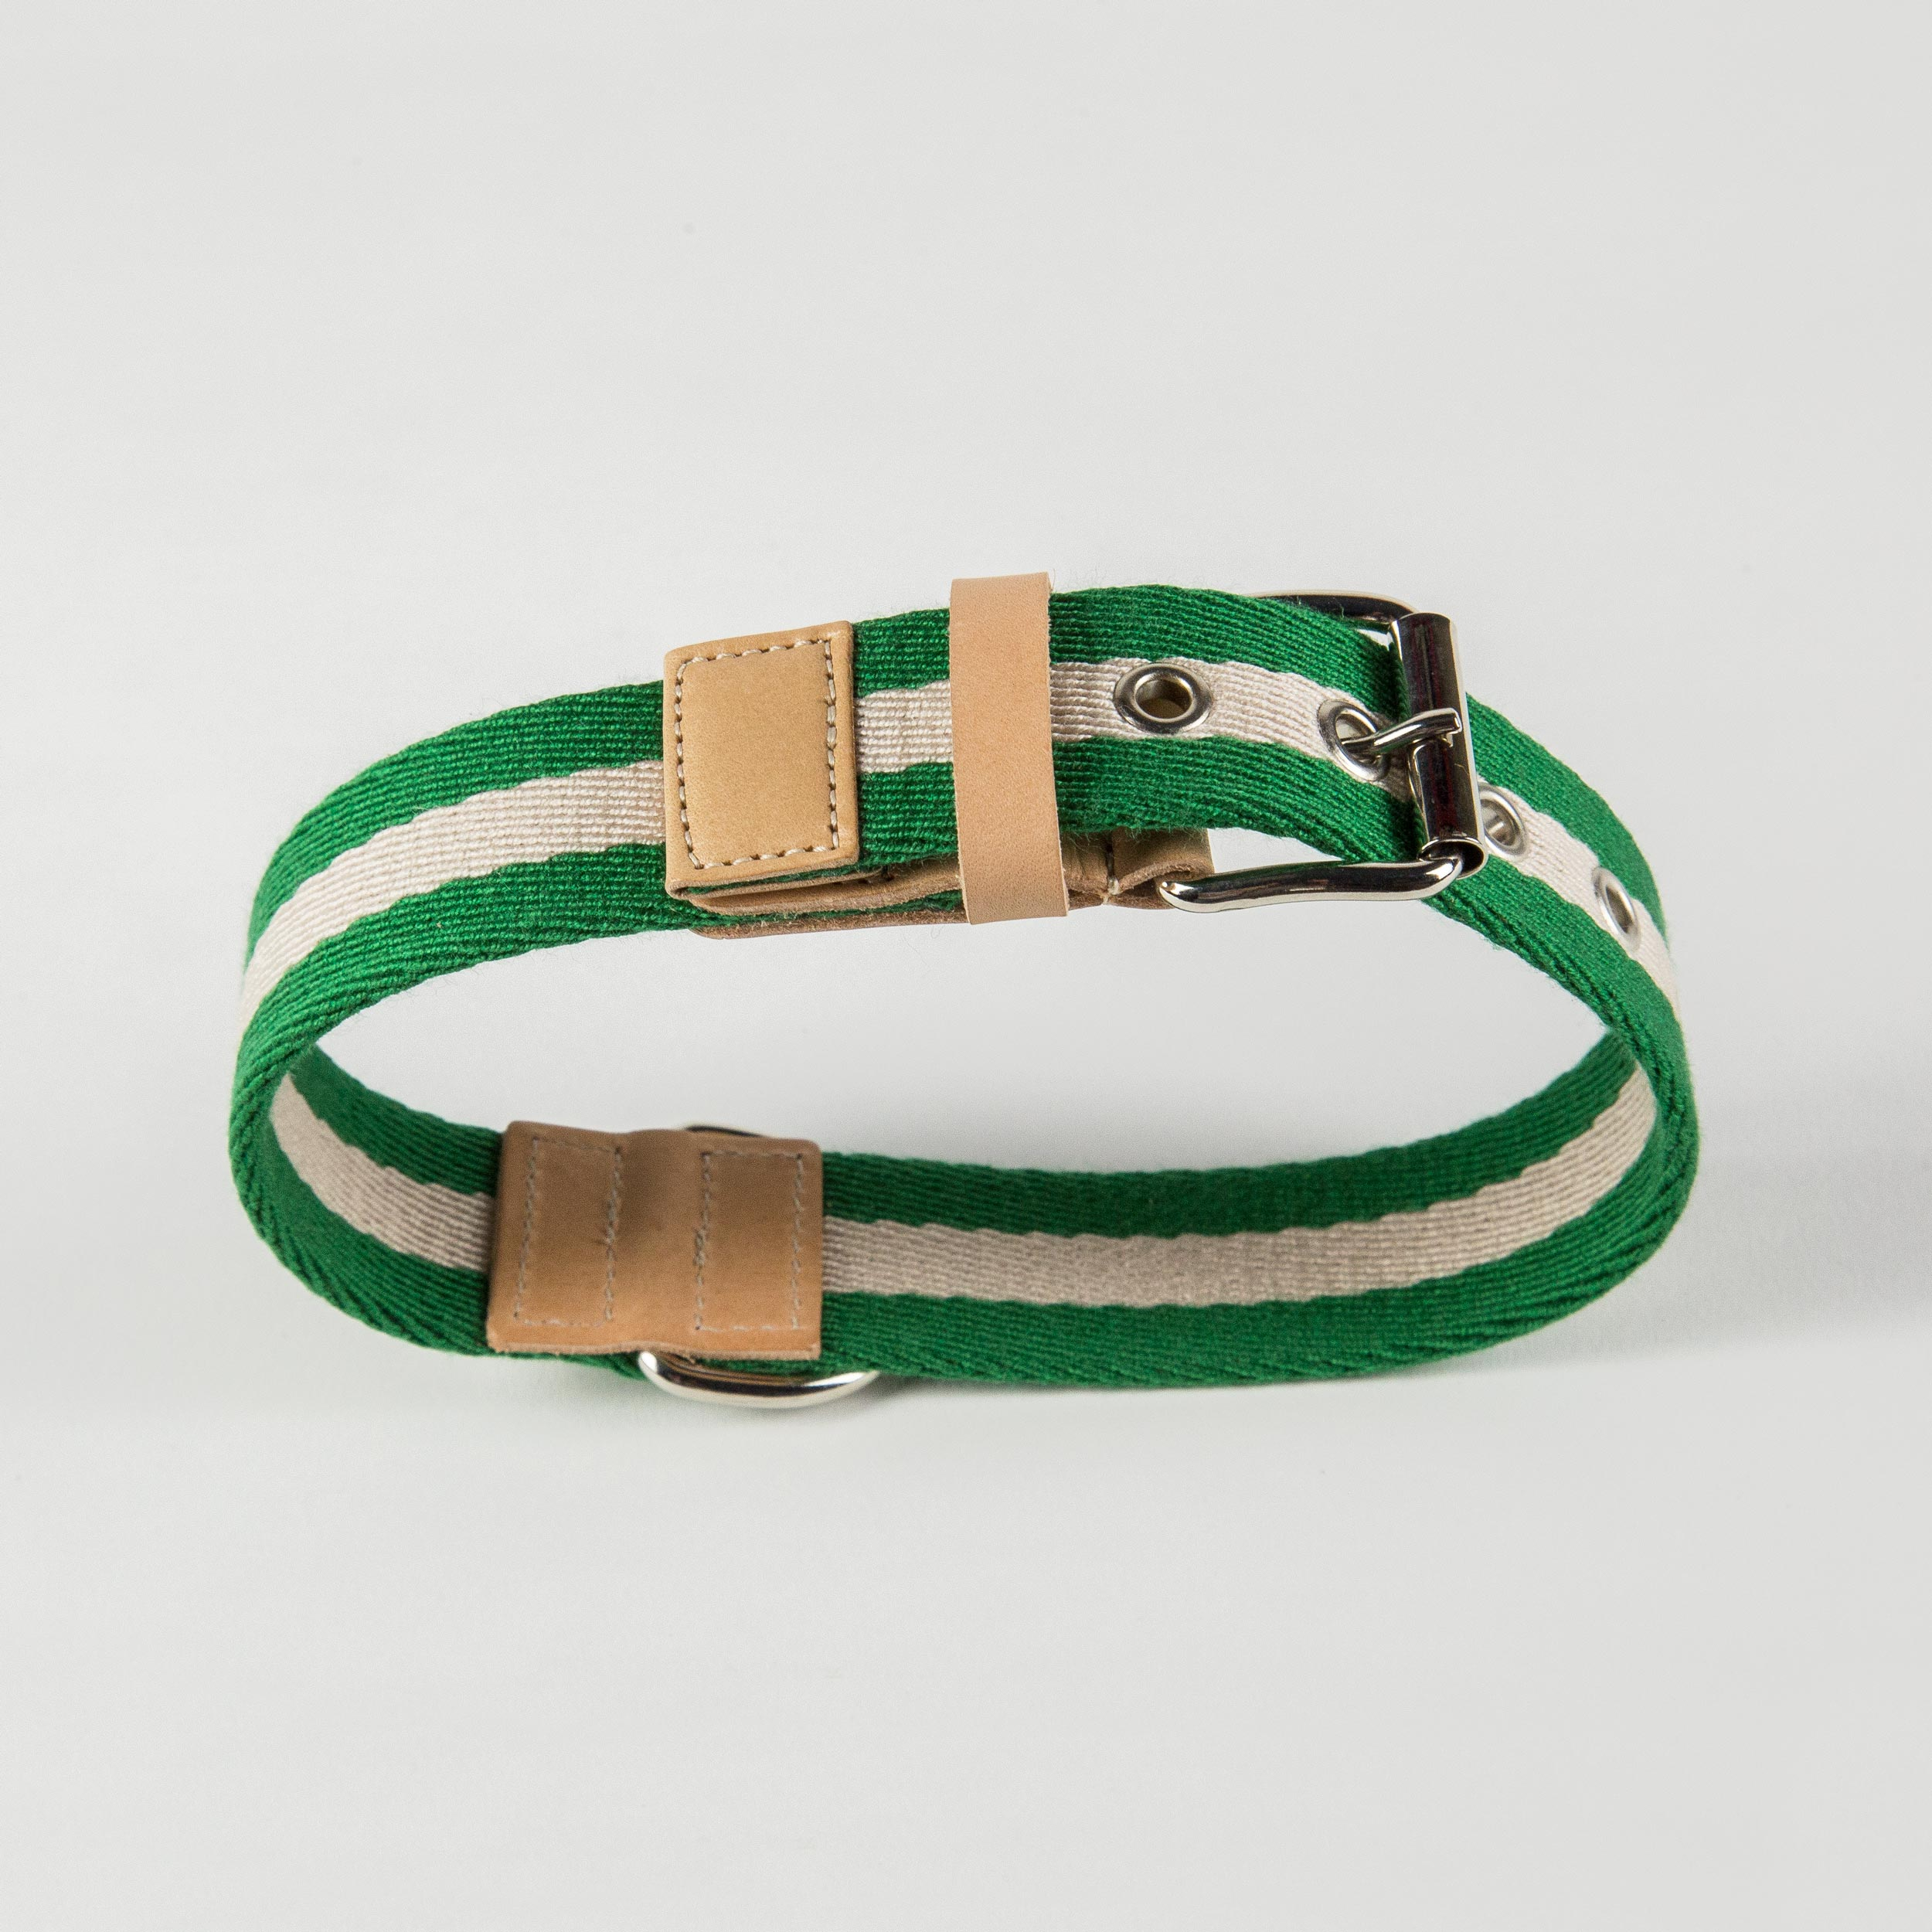 collar for dogs in green/cream fabric and leather